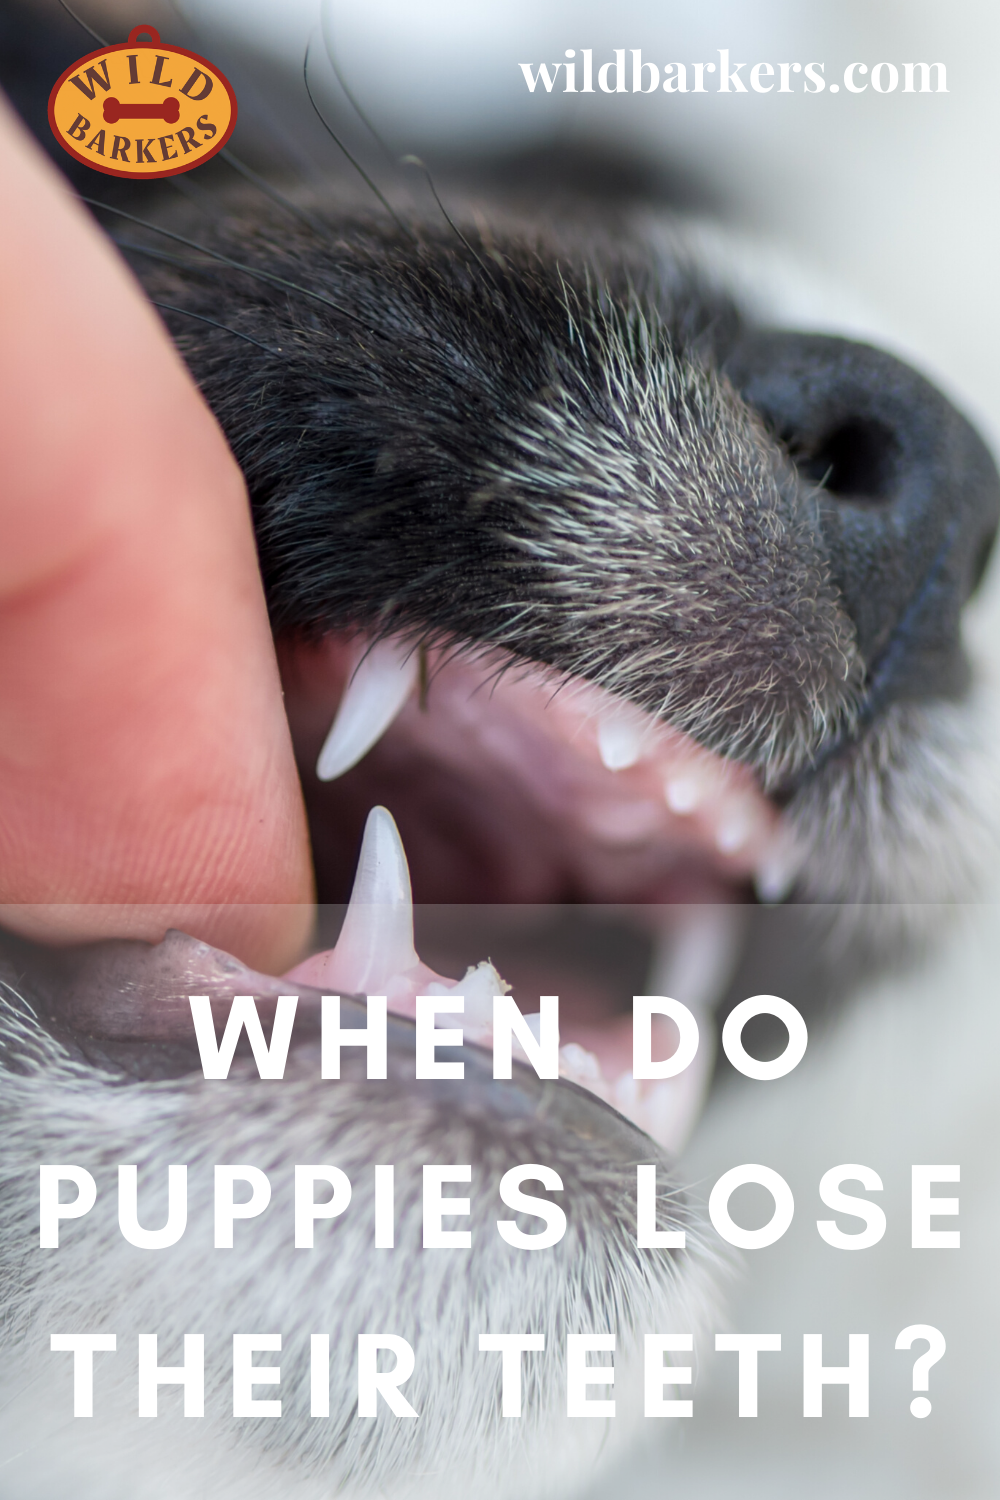 When Do Puppies Lose Their Teeth? Teeth Development and